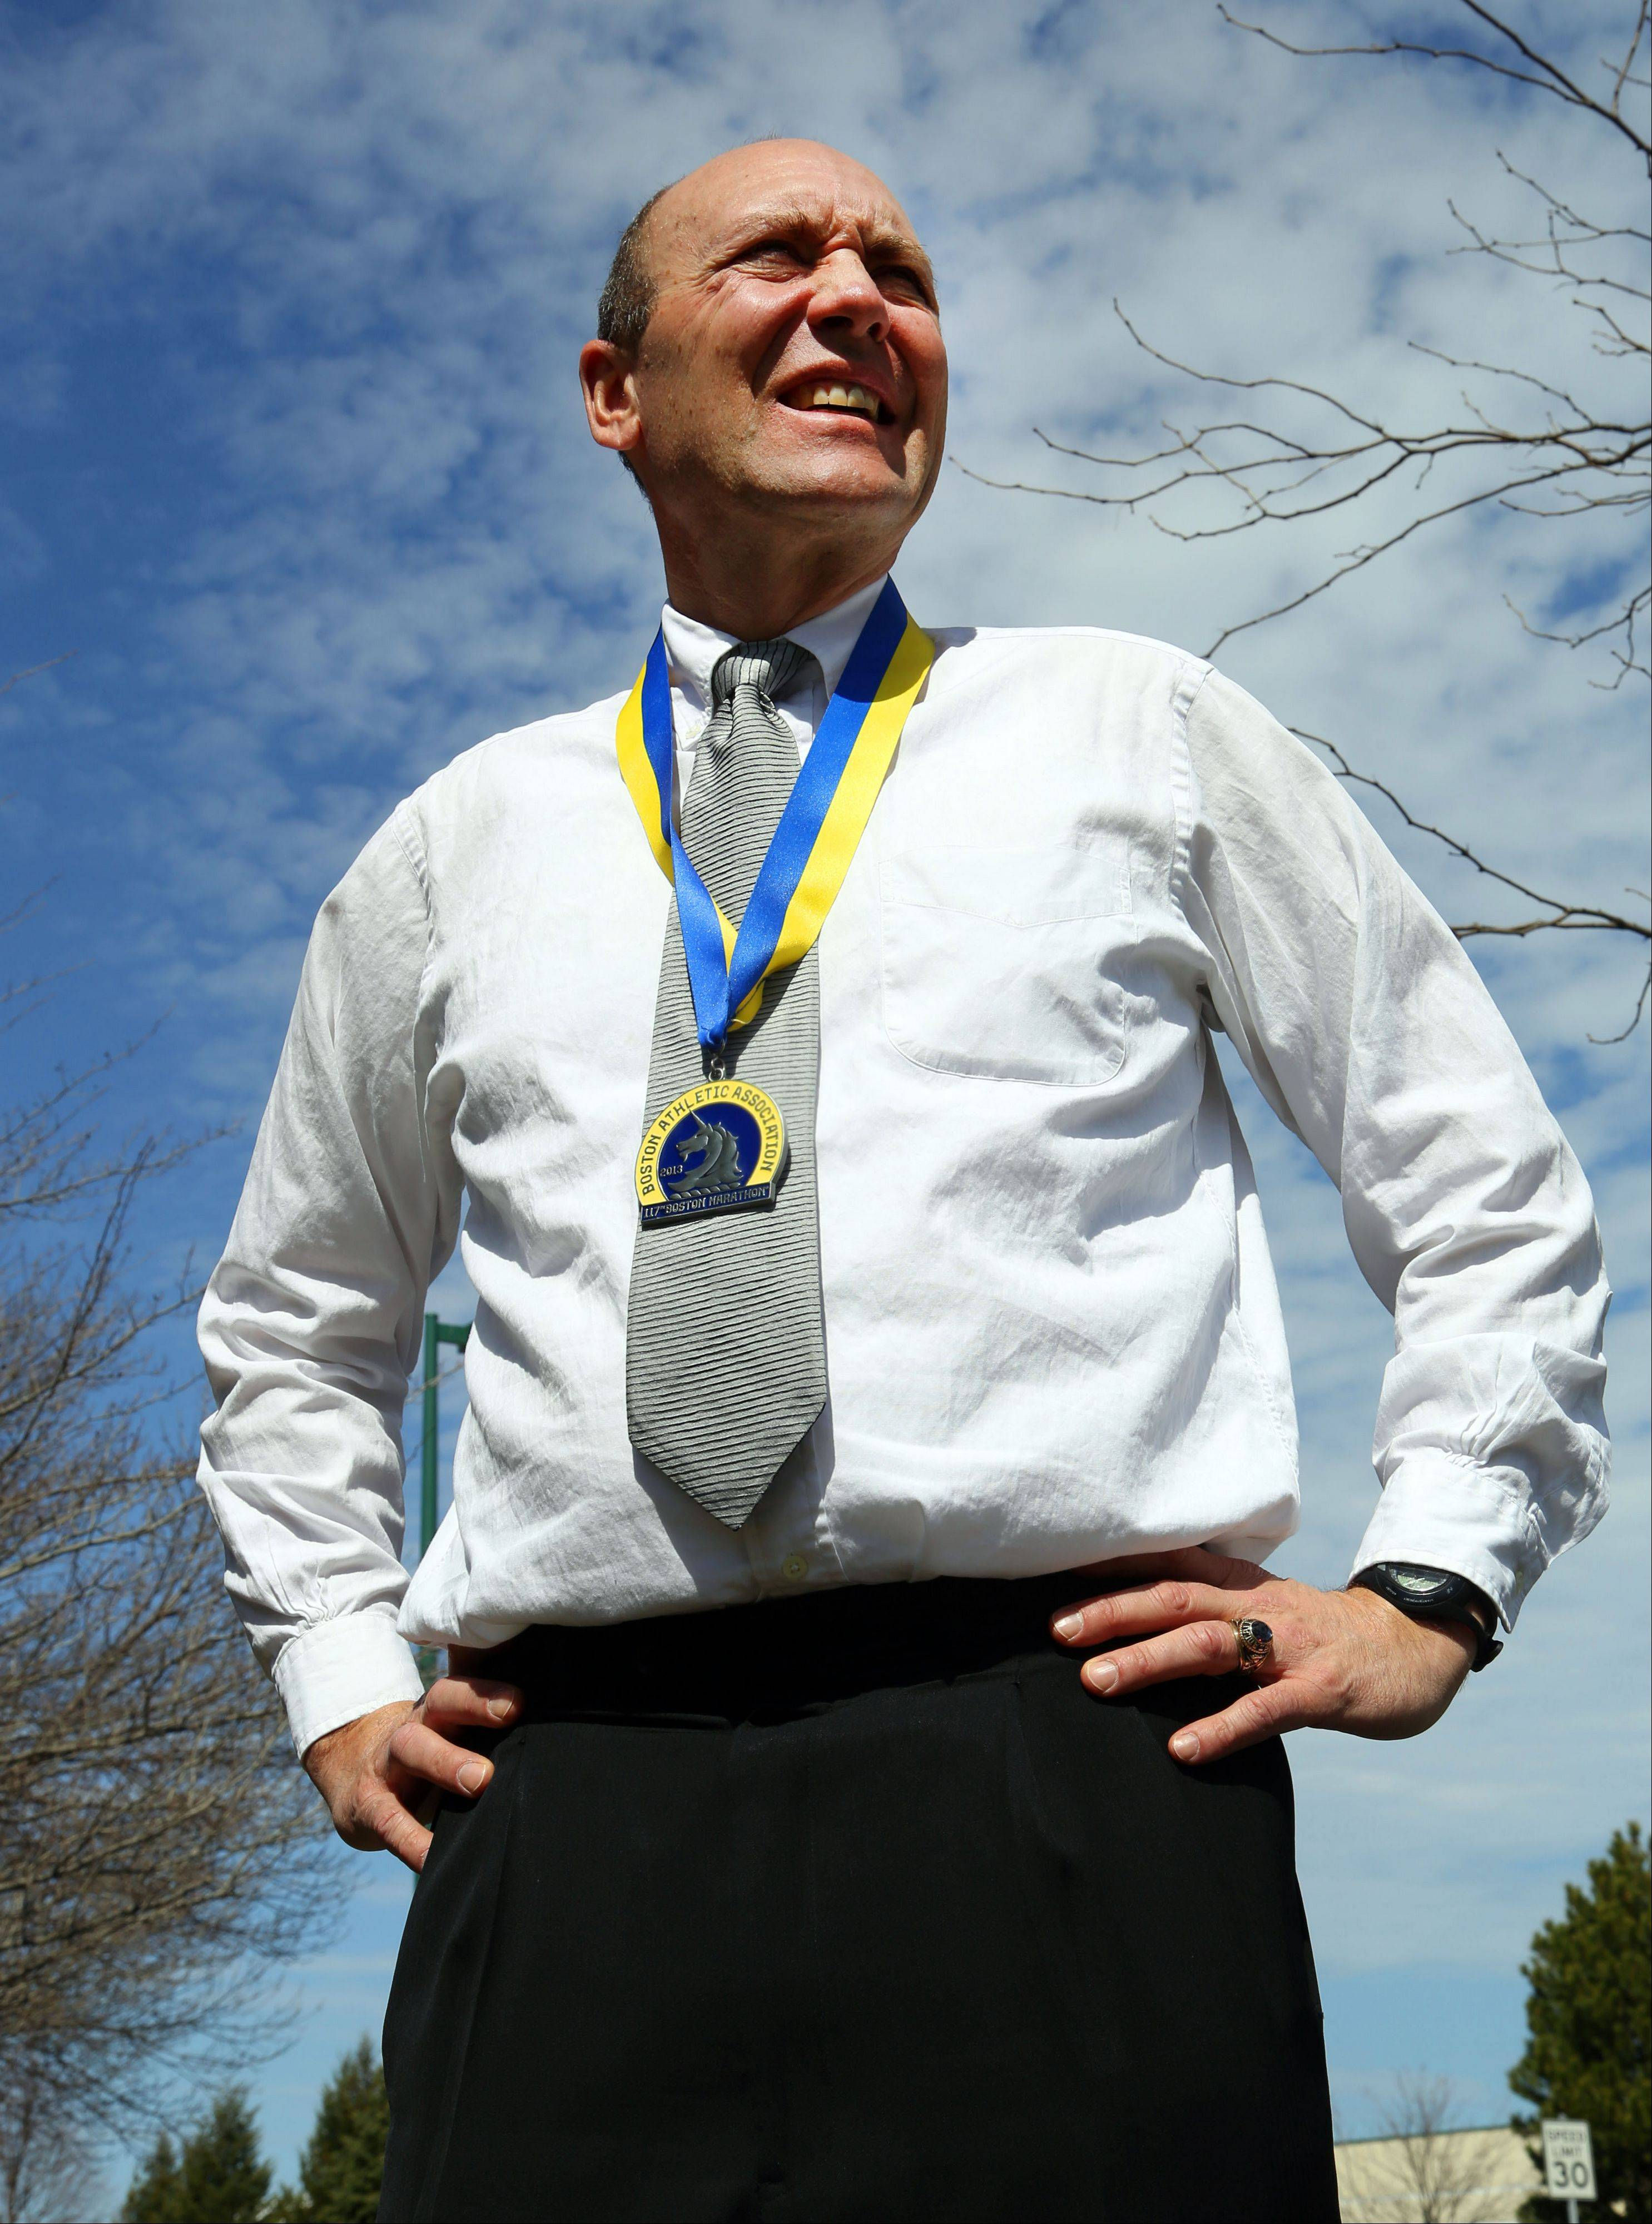 Hawthorn Woods resident Al Scaletta ran in Monday's Boston Marathon. He intends to return in 2014.